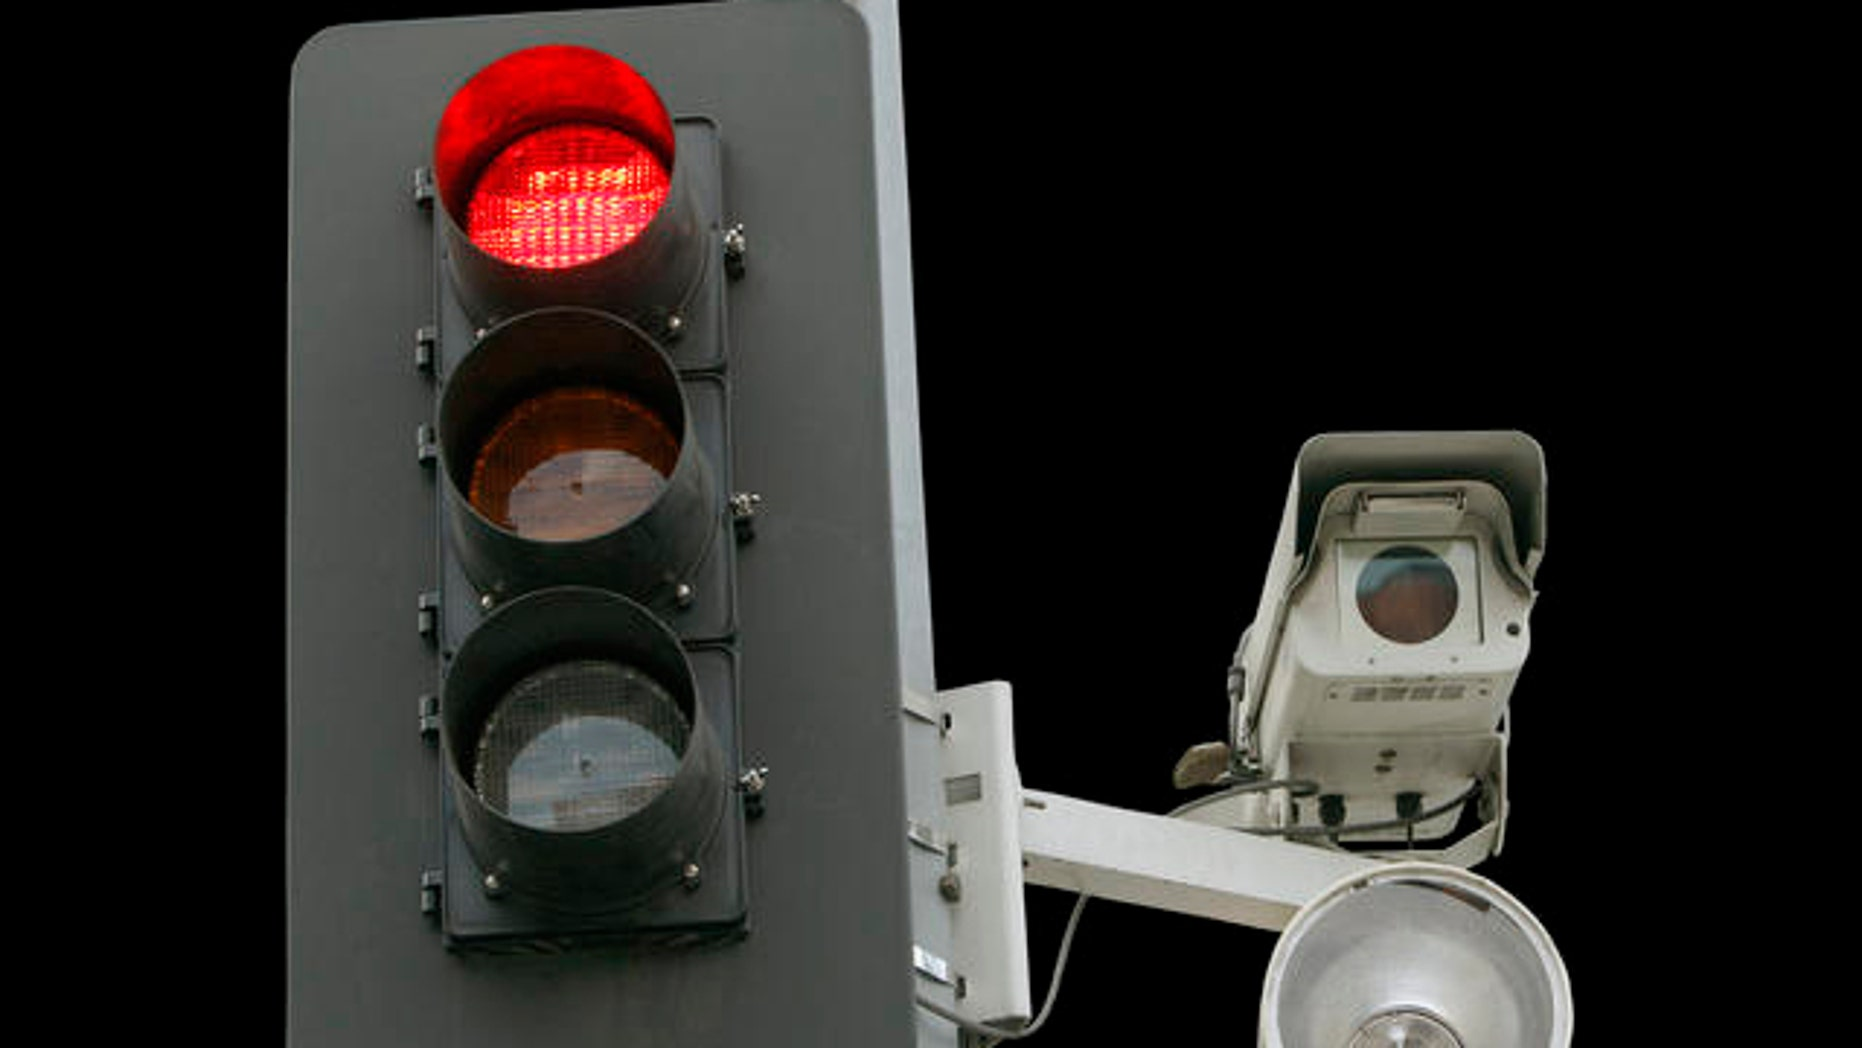 The only thing less popular than red light cameras might be robocalling debt collections.